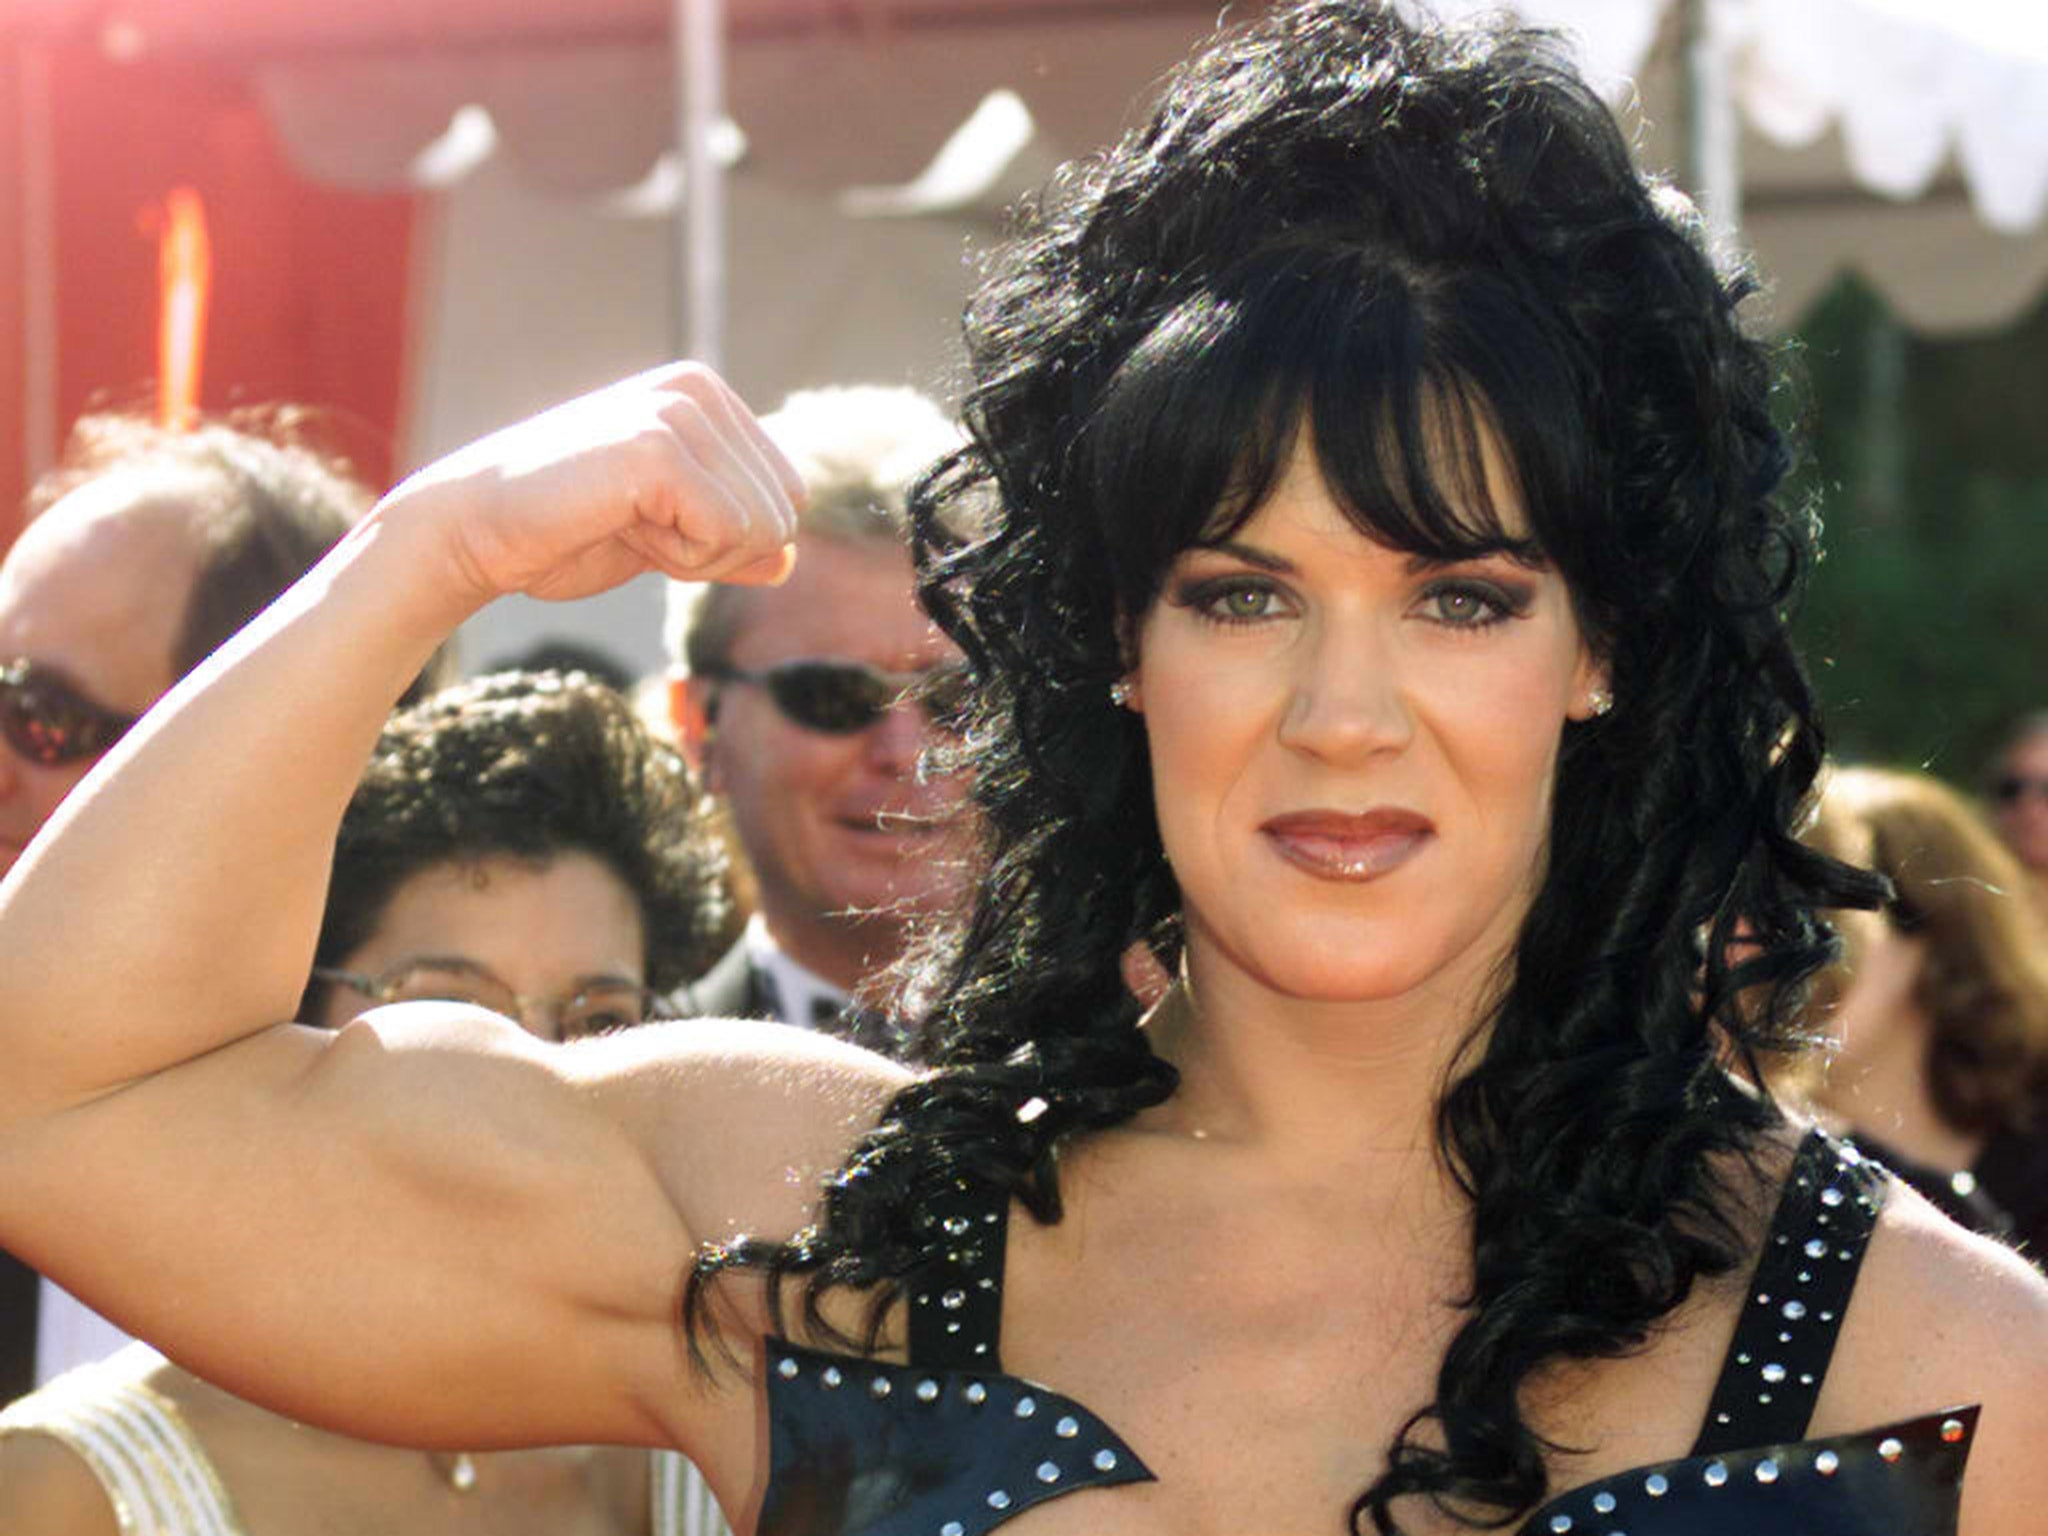 Chyna Dead Wwe Icon Joan Laurer Dies Aged 45 After Being